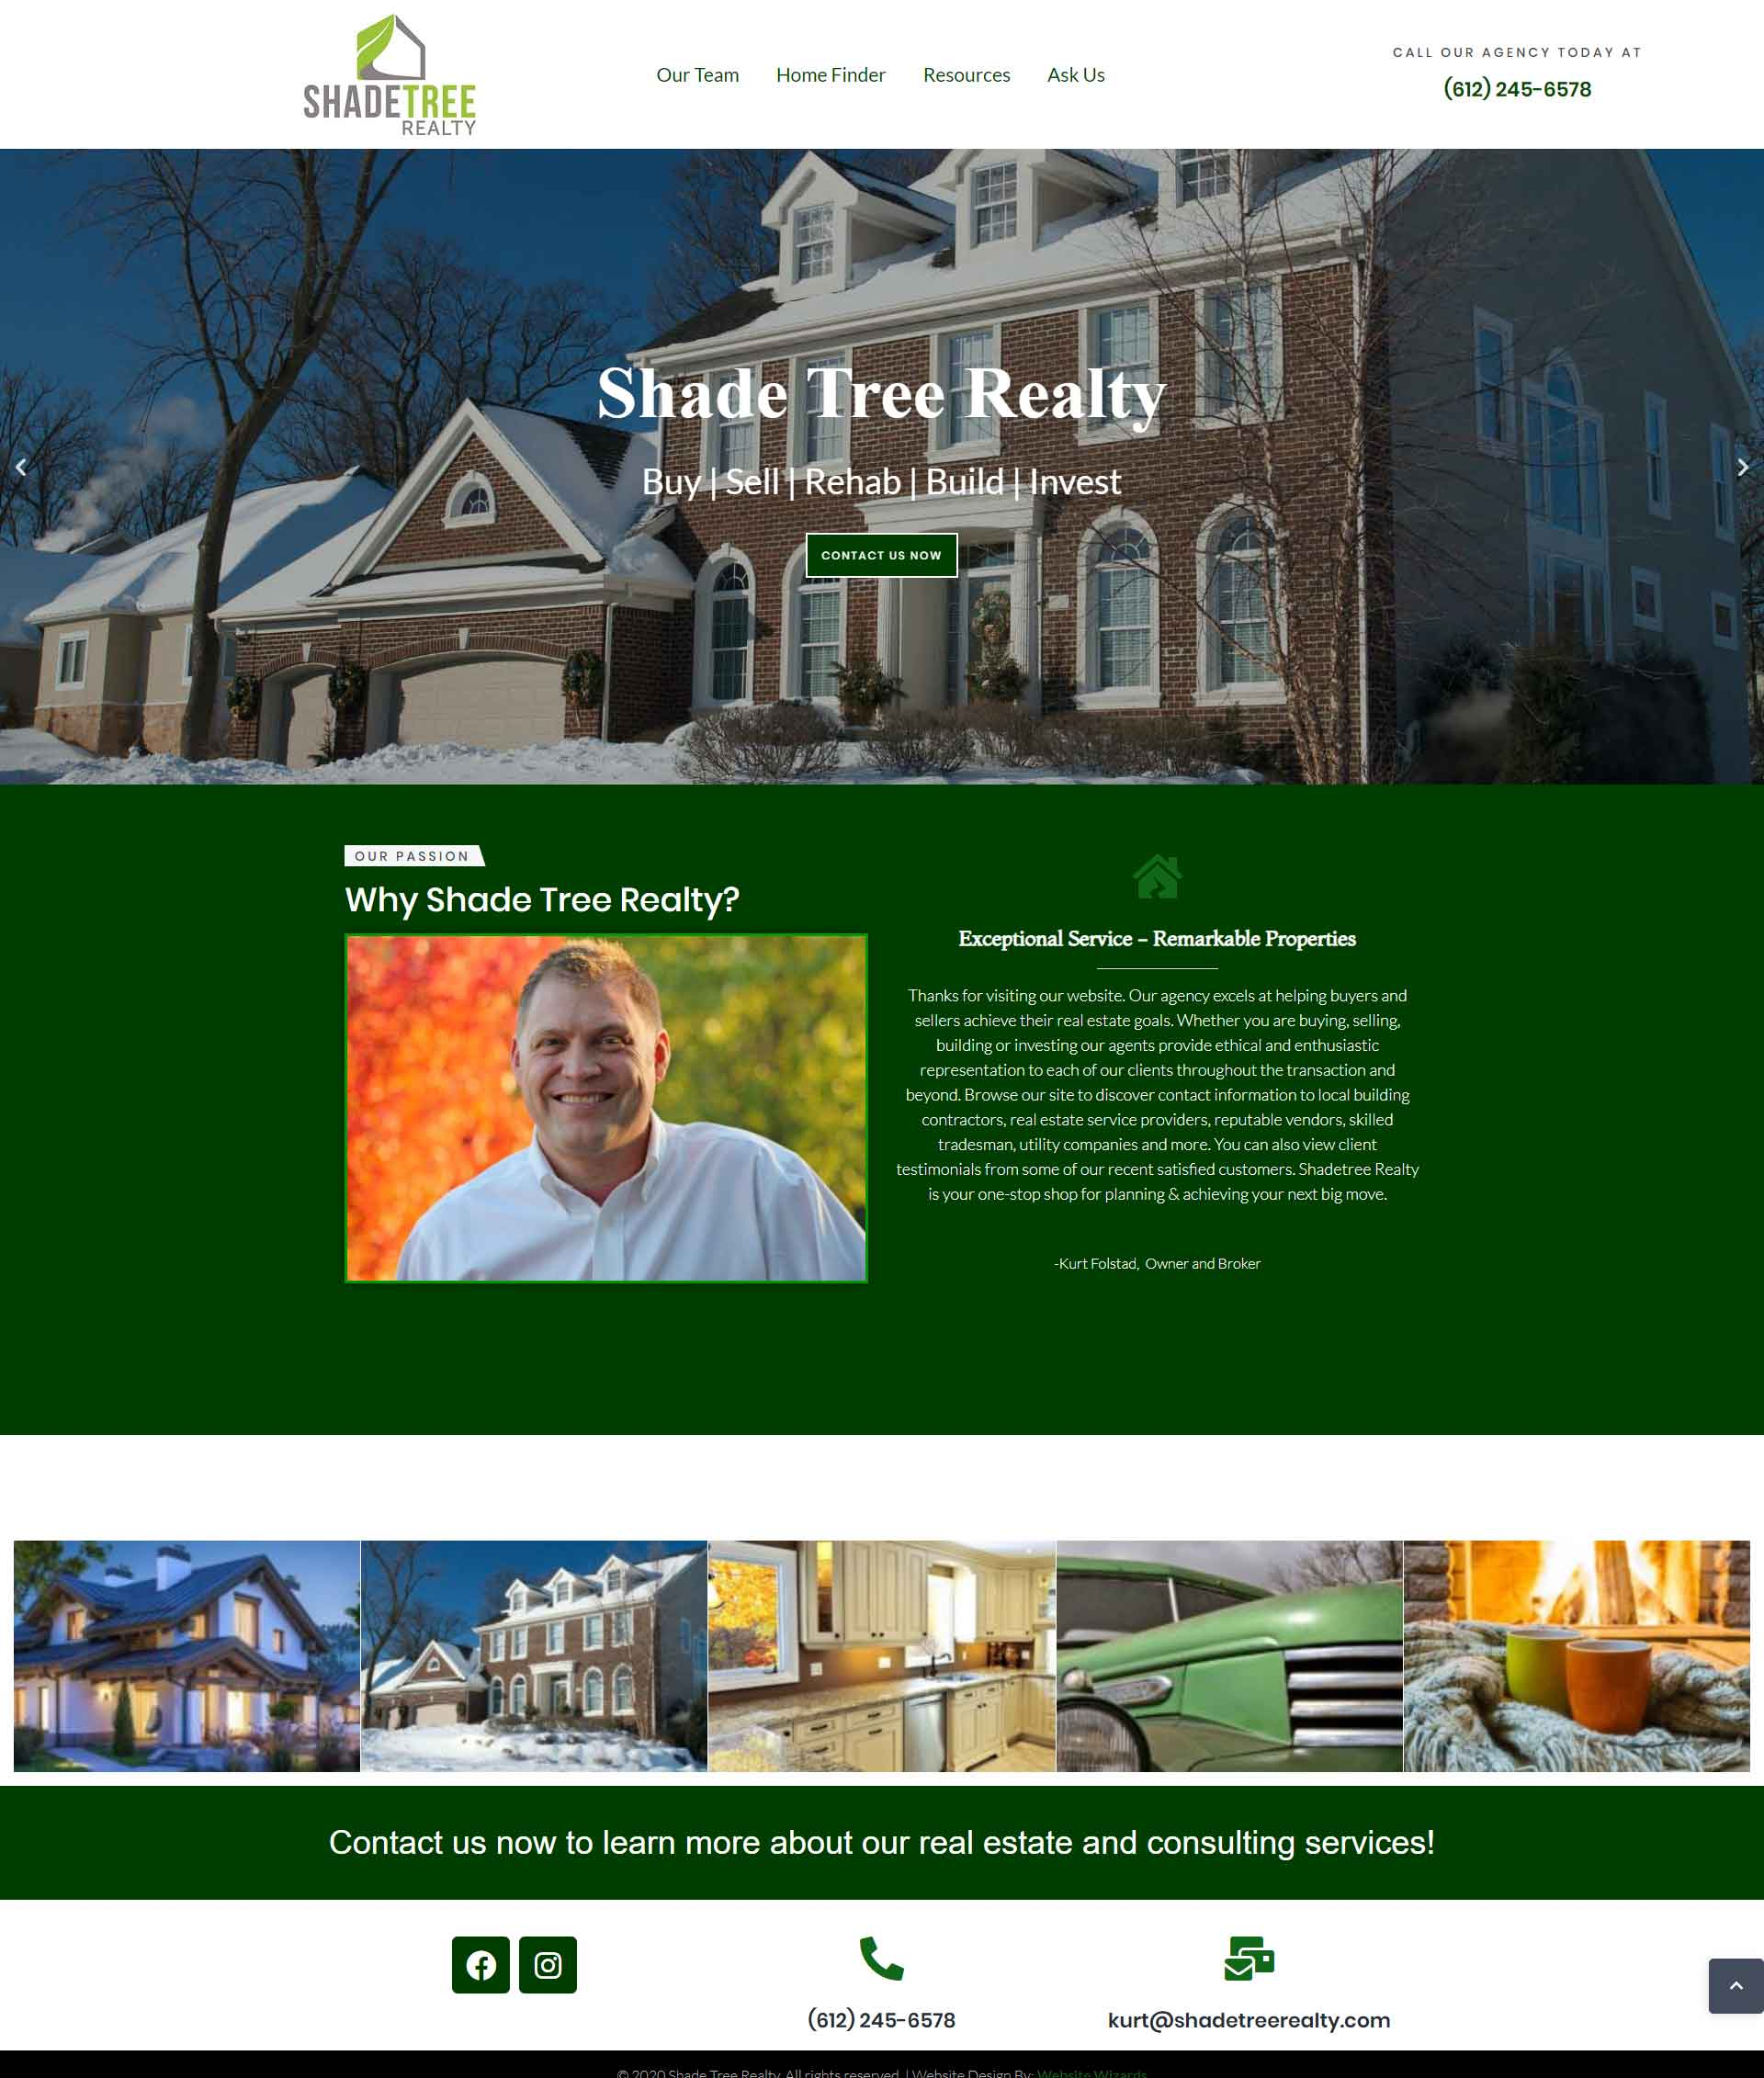 Image of realtor website home page